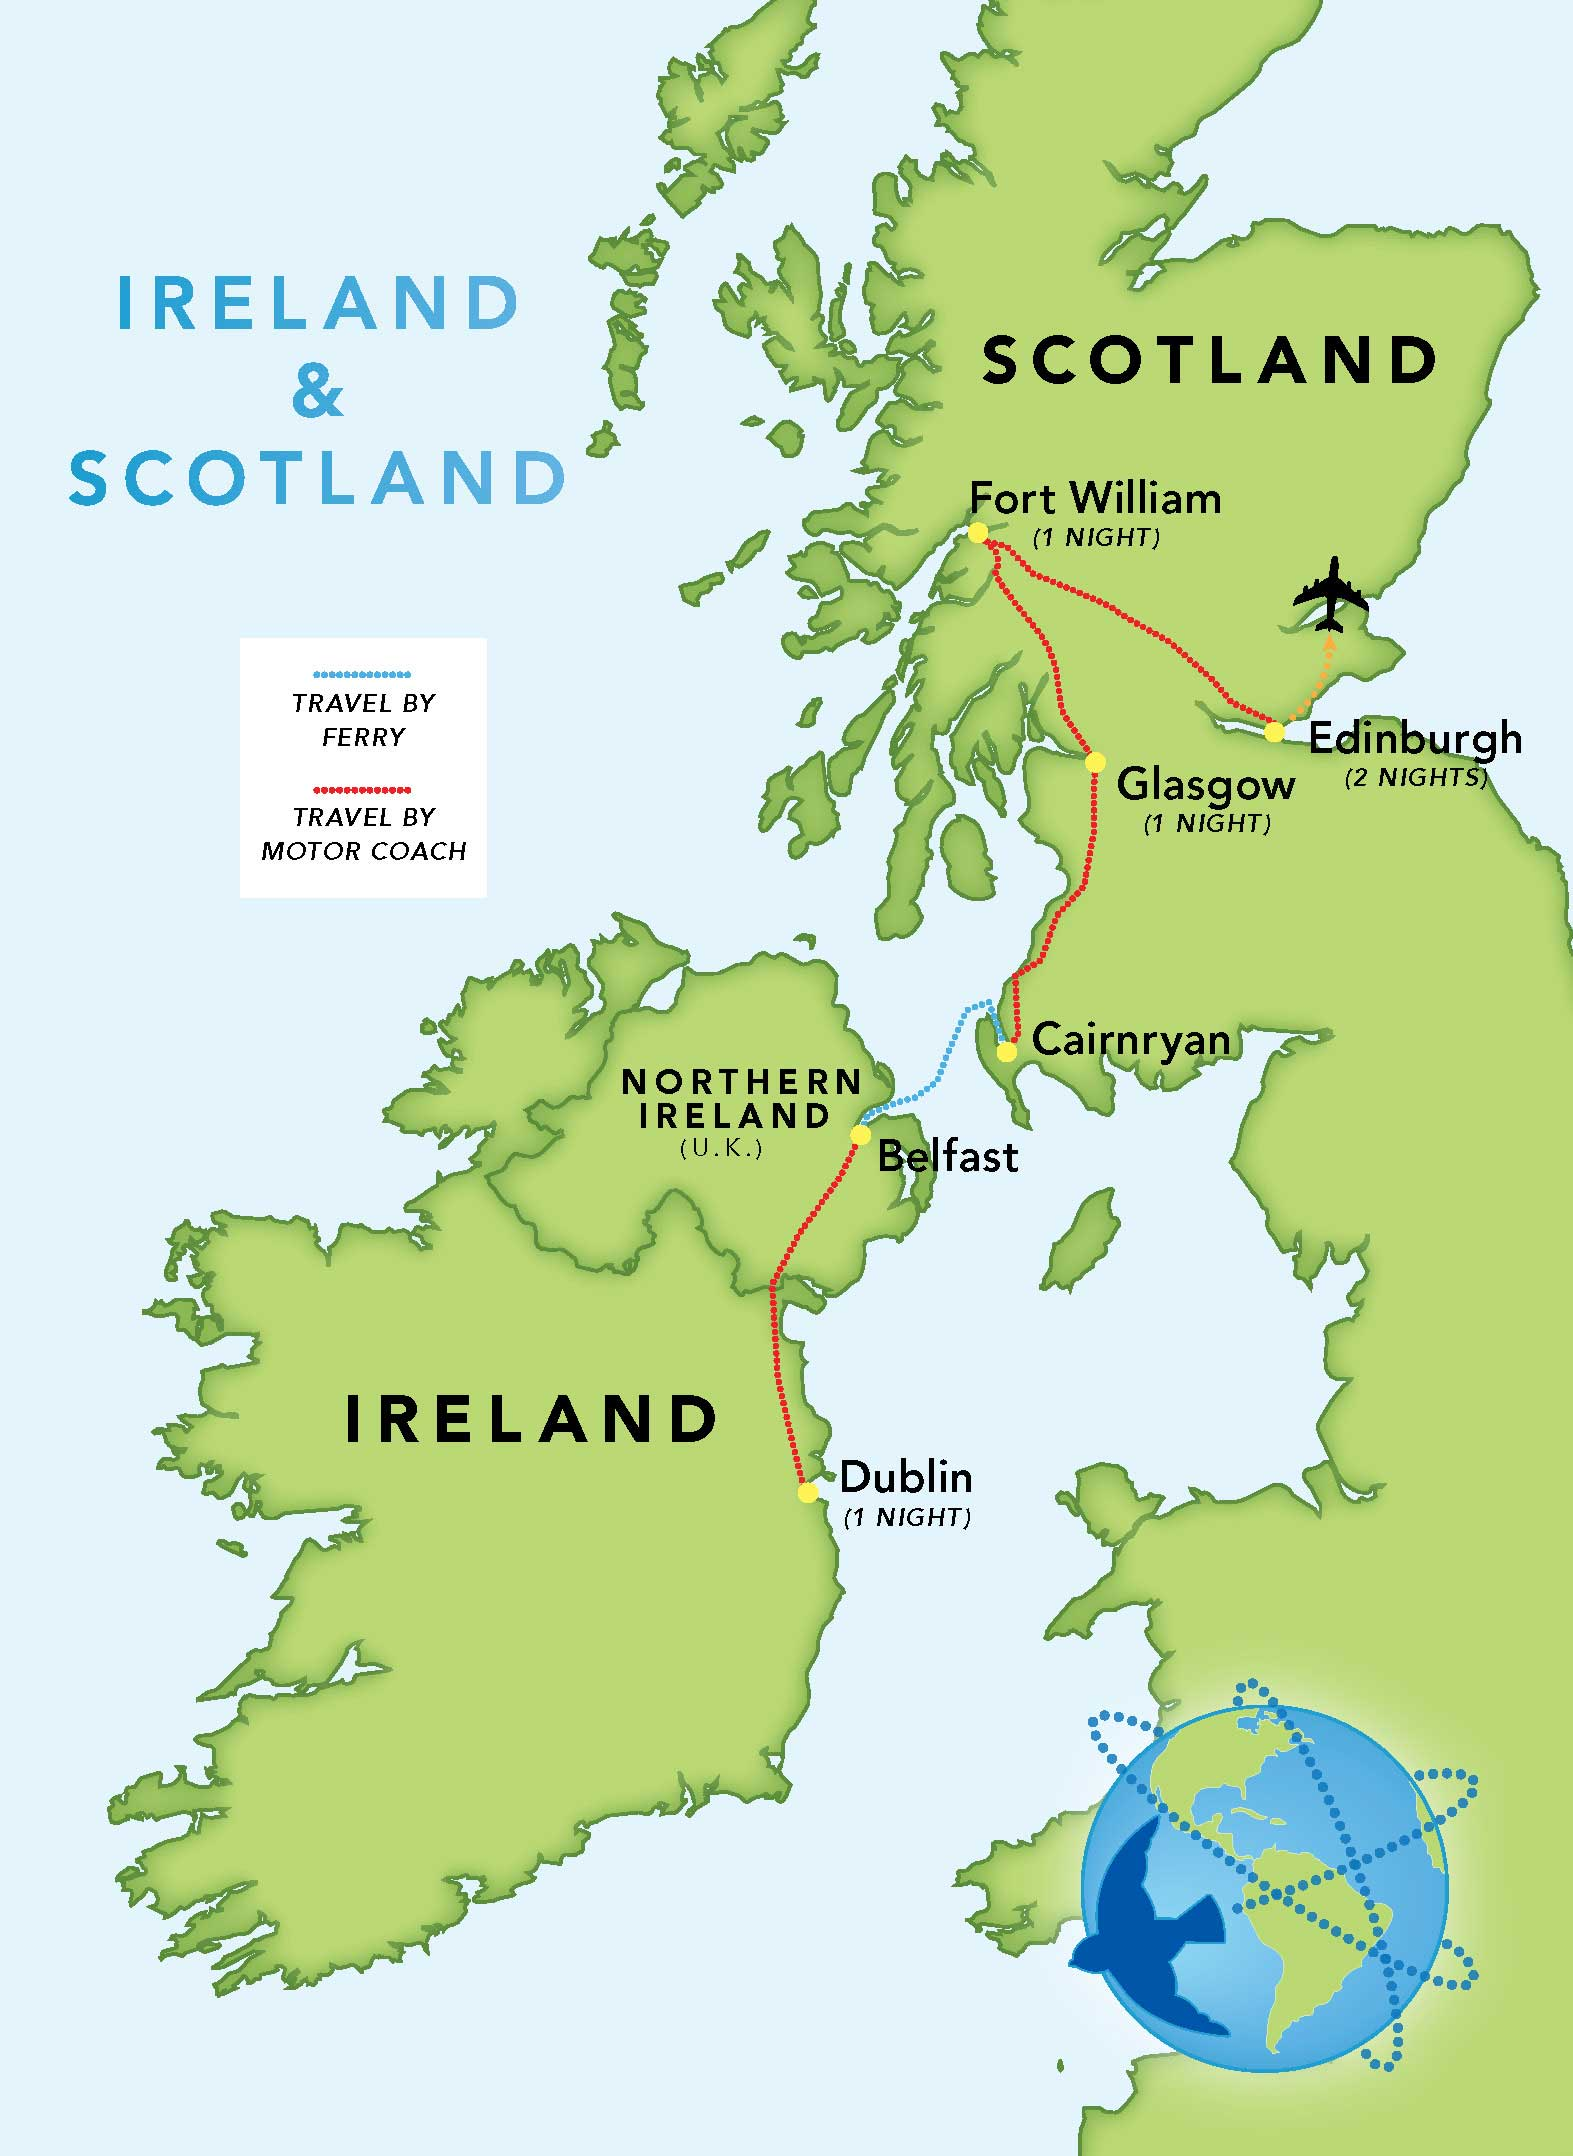 Map Of Scotland And Ireland : scotland, ireland, Ireland, Scotland, Bluebird, Guided, Tours